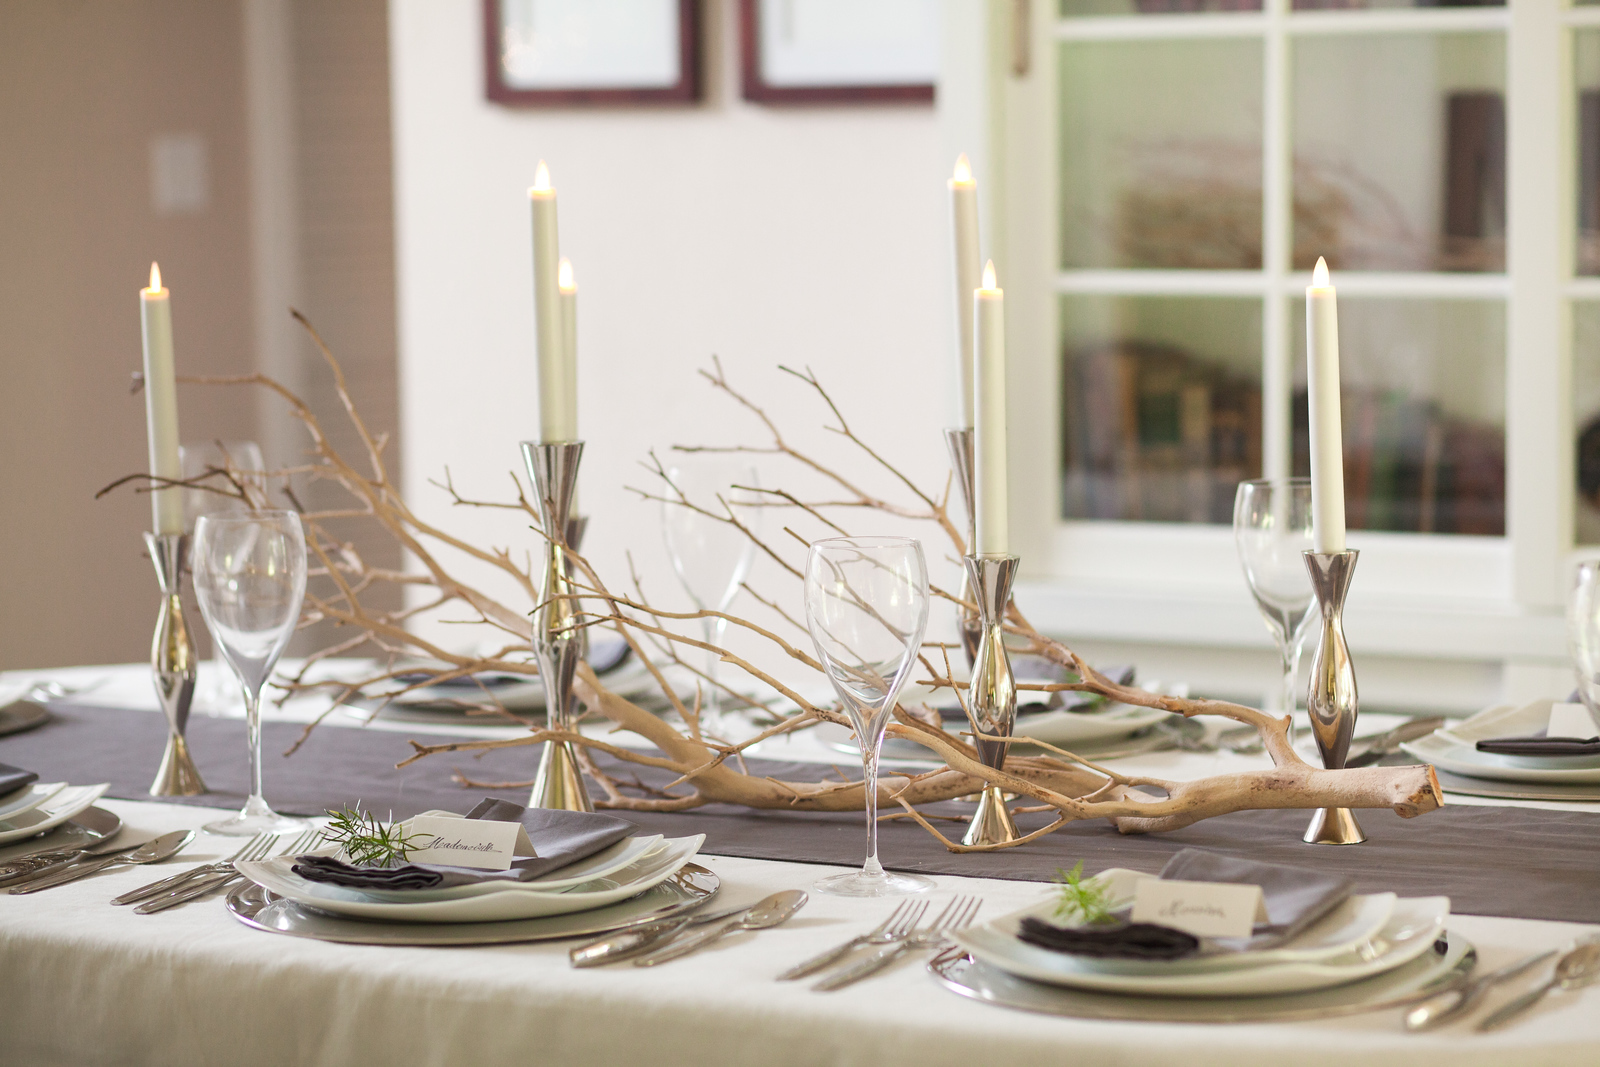 Whimsical Manzanita Branch Provides Table Top Decor